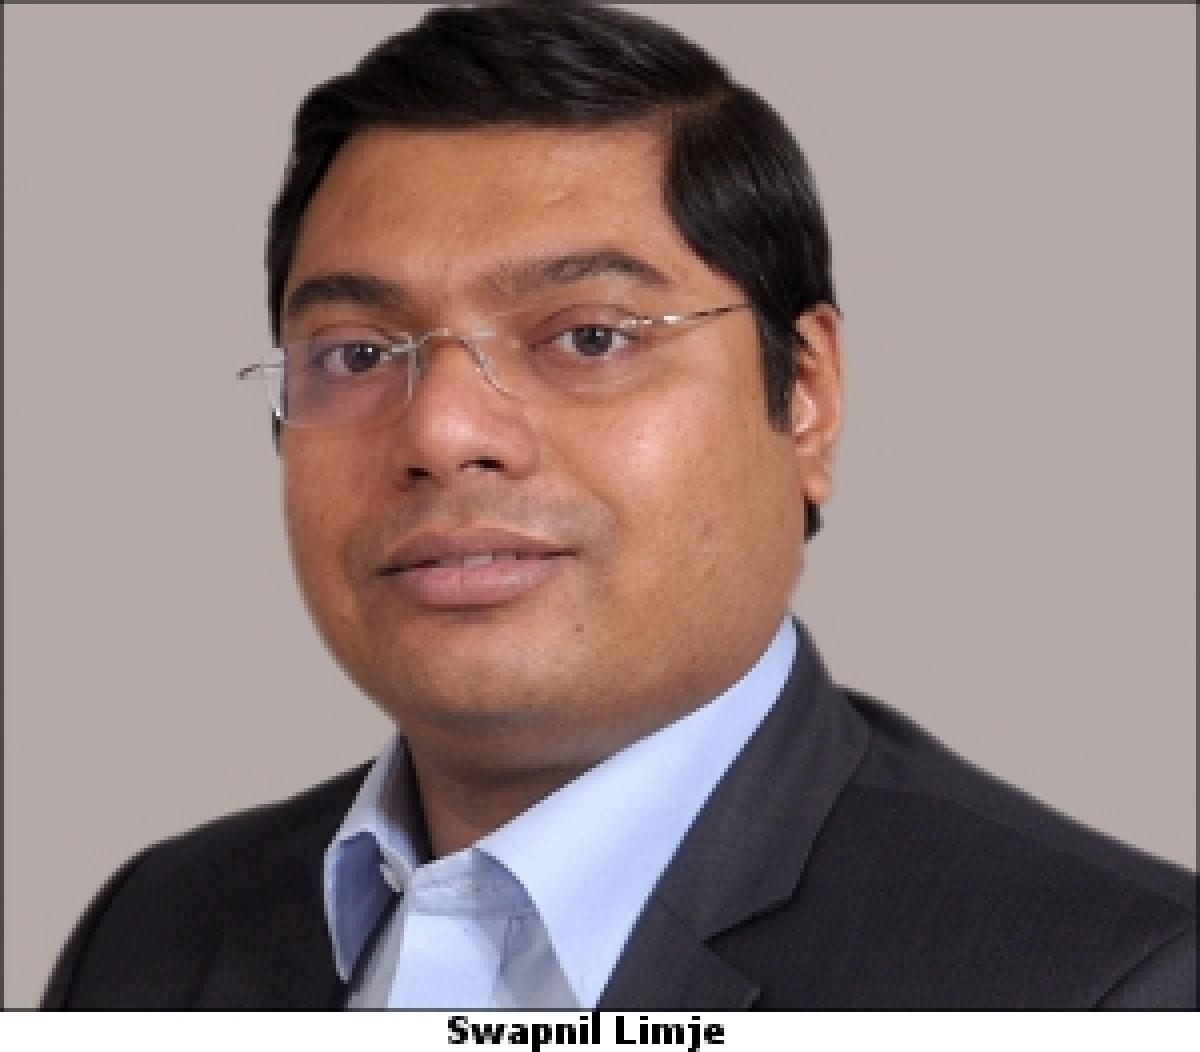 SureWaves appoints Swapnil Limje as VP, business planning, strategy